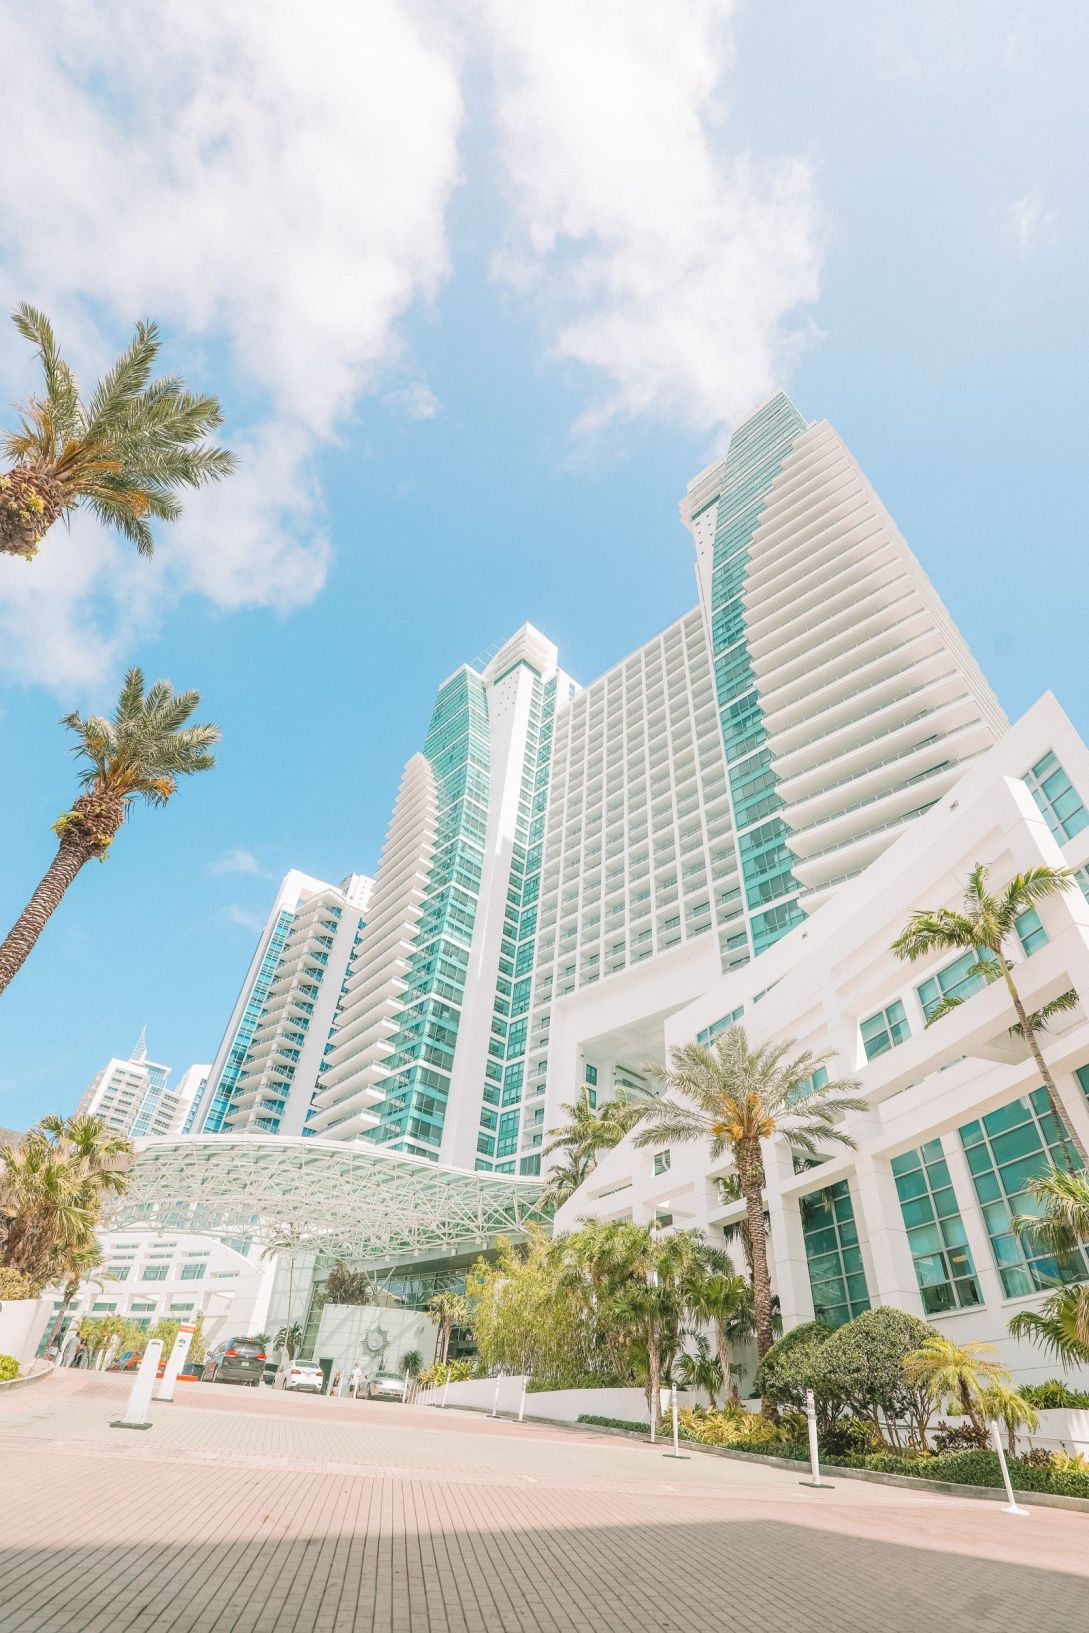 15 Of The Best Things To Do In Fort Lauderdale   Fort lauderdale things to do, Fort lauderdale ...